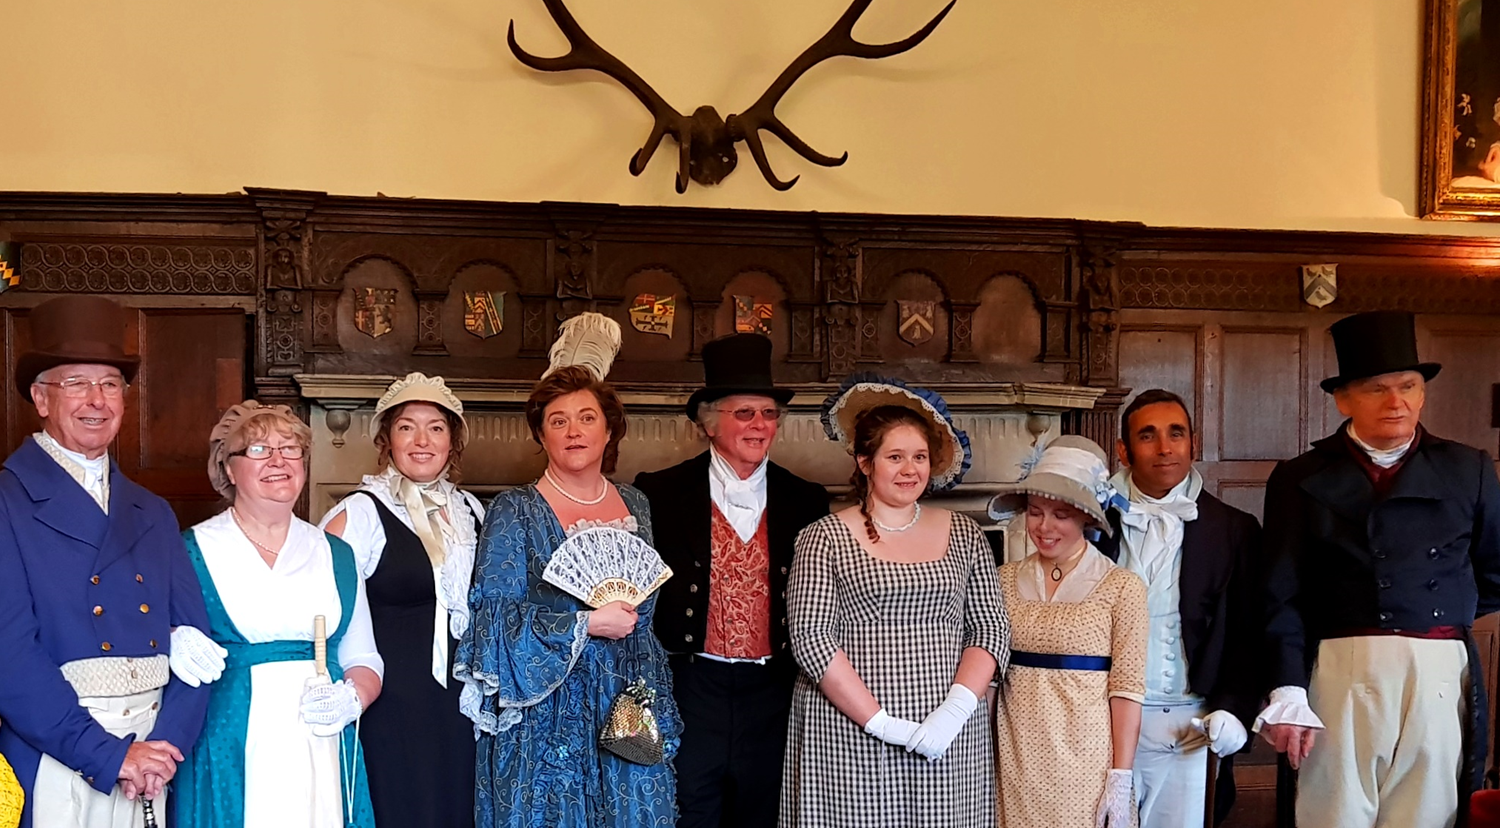 Participants of the 2018 JALF Walk for Literacy at Chawton House. Amanda Mortensen is third from the left.  Credit: Julia Grantham